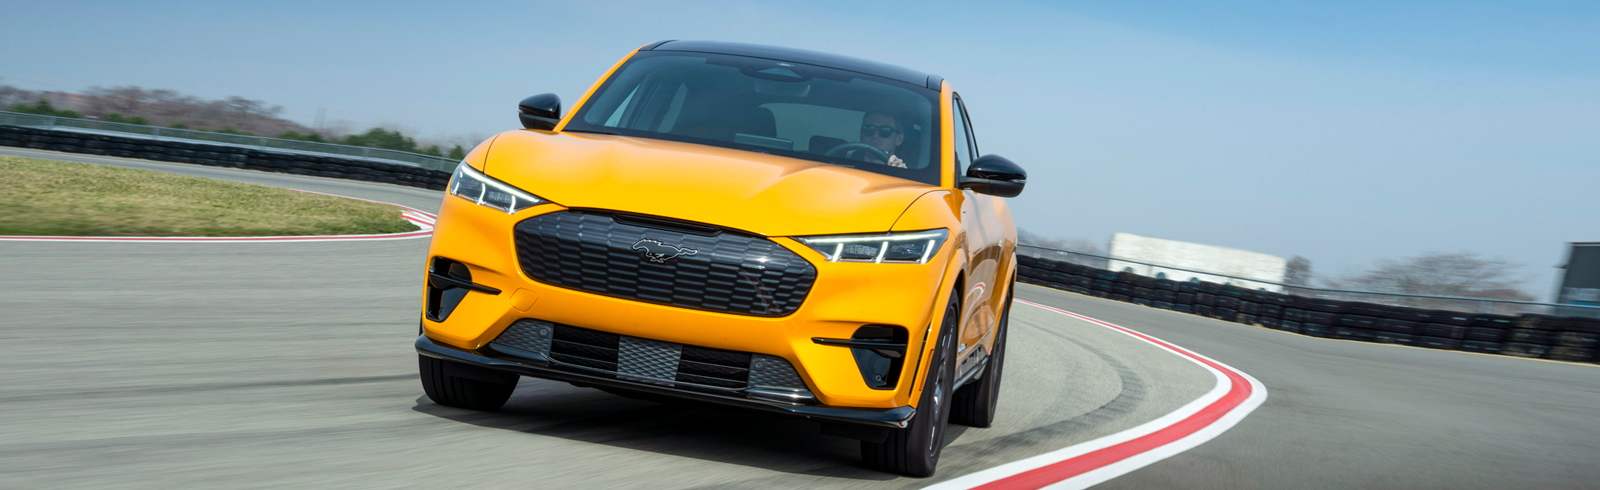 Ford Mustang Mach-E GT and Mustang Mach-E GT Performance Edition receive official EPA range